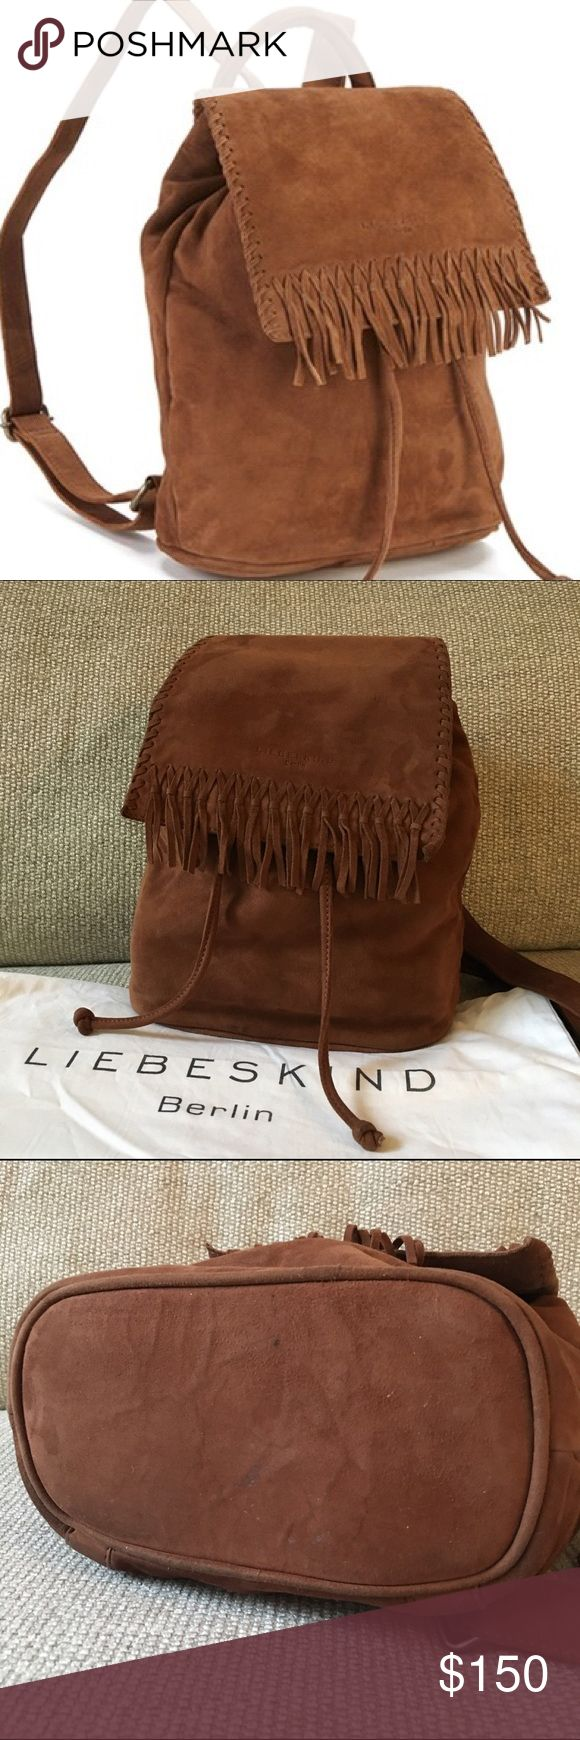 """Liebeskind suede fringe backback Super soft suede backpack in great condition. Beautiful brown/cognac hue. Flap top with fringe trims. Magnetic snap and drawstring closure. Top handle + adjustable straps. Interior has two open pockets and one zipper pocket. 100% suede leather. Measurements: L 9"""", H 11"""", W 4½"""". Minor specks of scratches on the bottom (as shown in photo). Will ship with original dust bag. Liebeskind Bags Backpacks"""